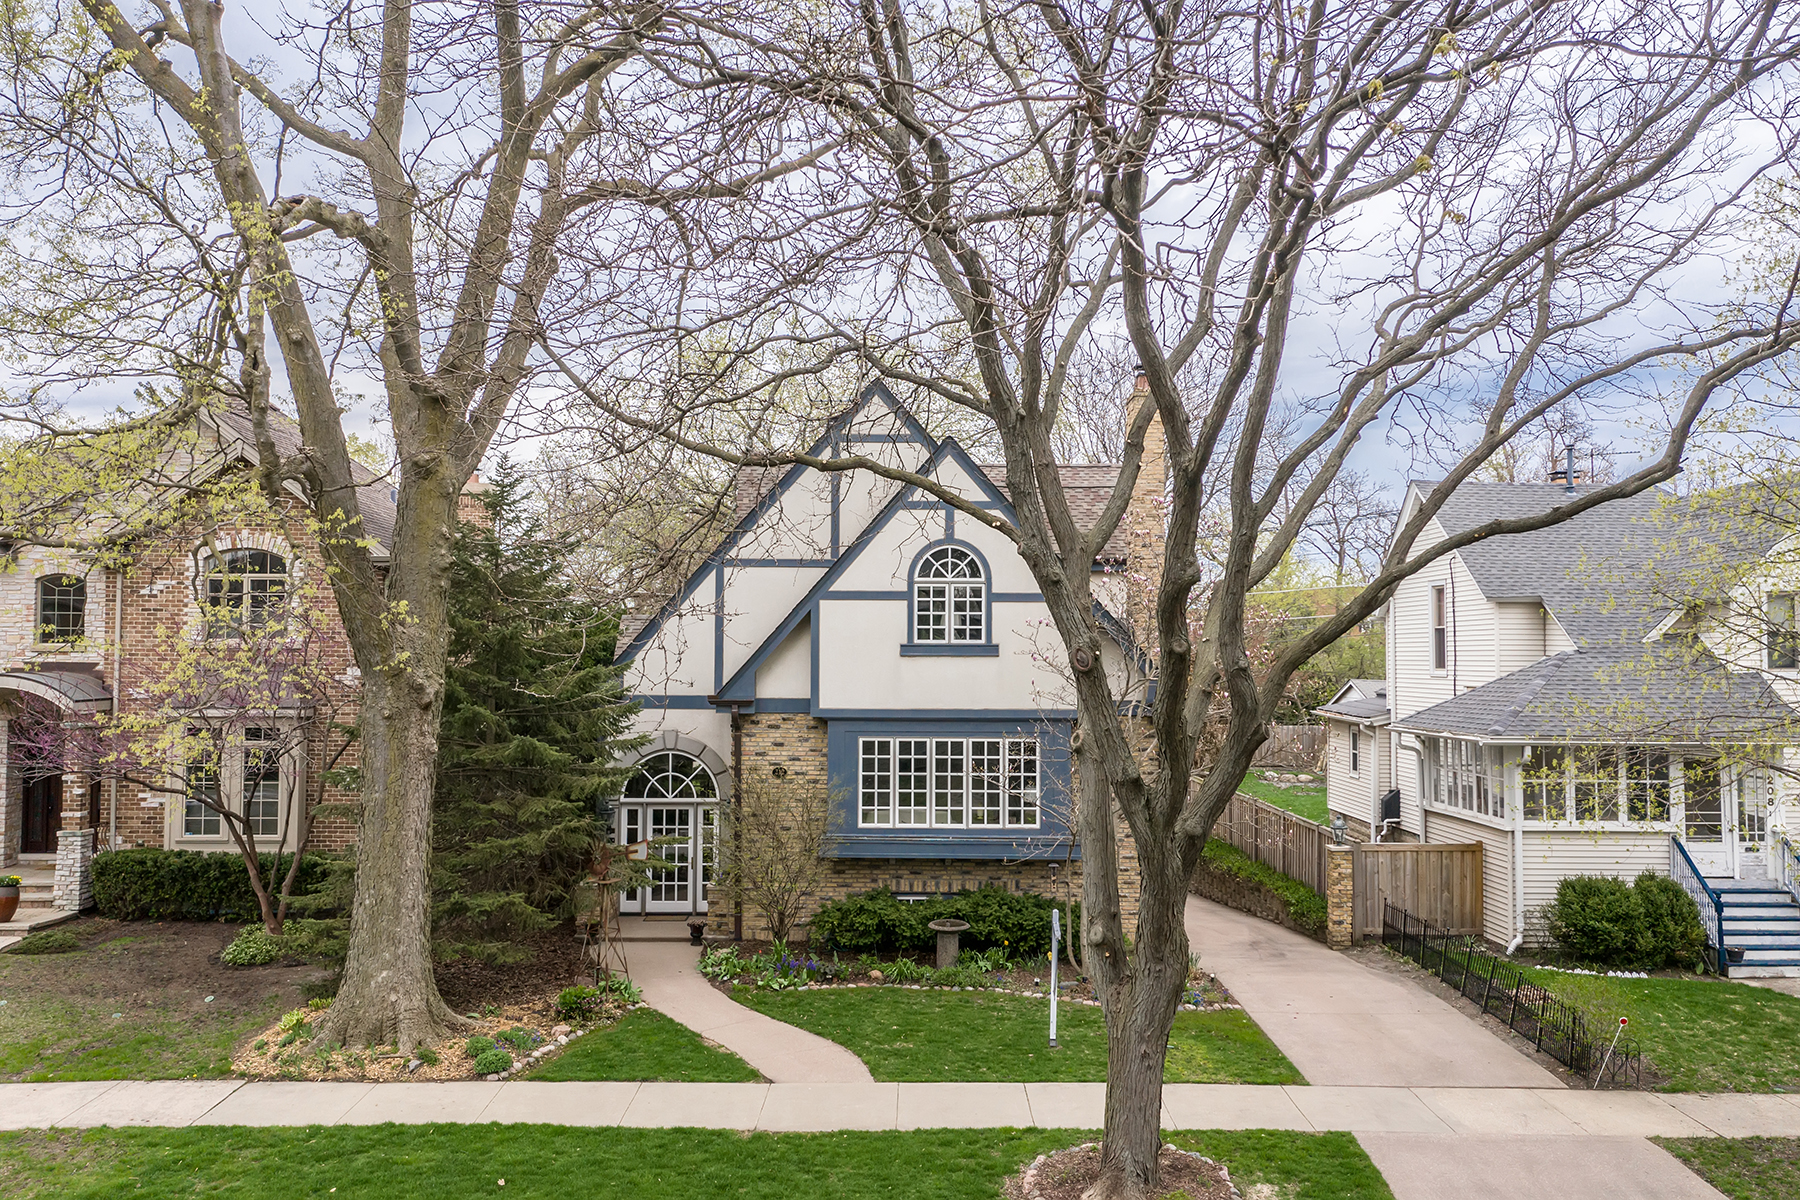 single family homes for Sale at 212 Stanley, Park Ridge 212 Stanley Avenue Park Ridge, Illinois 60068 United States